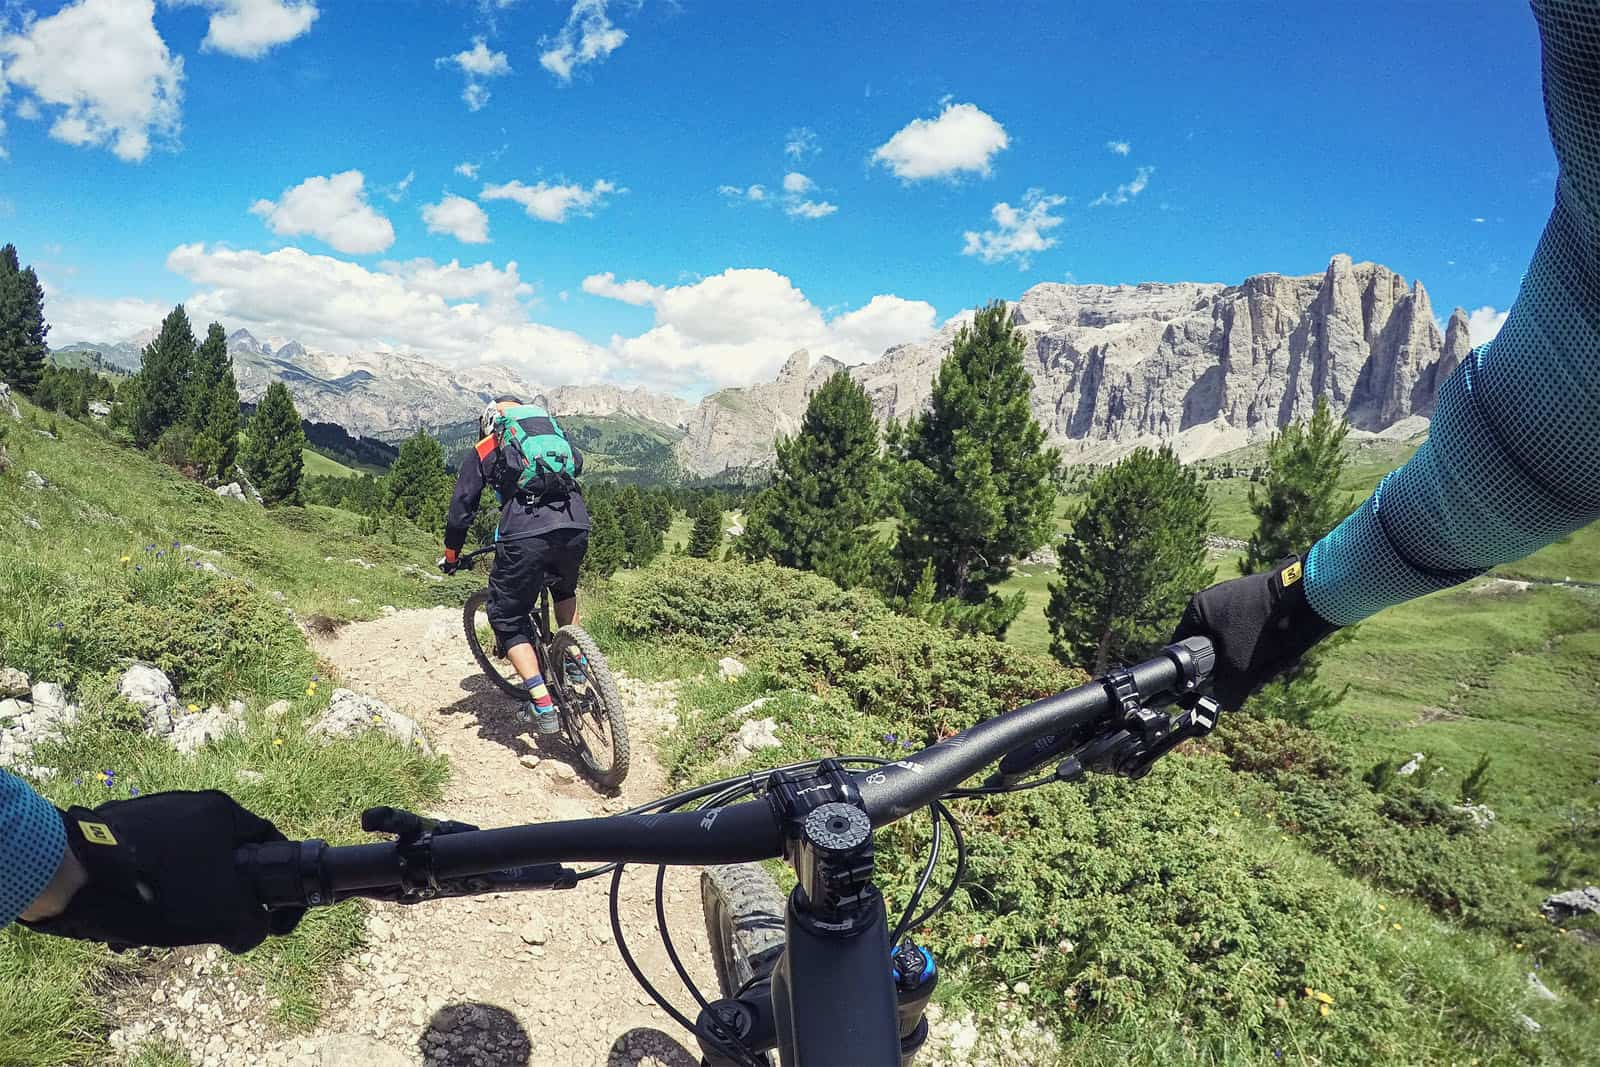 Best trails are from Gardena pass towards Corvara.